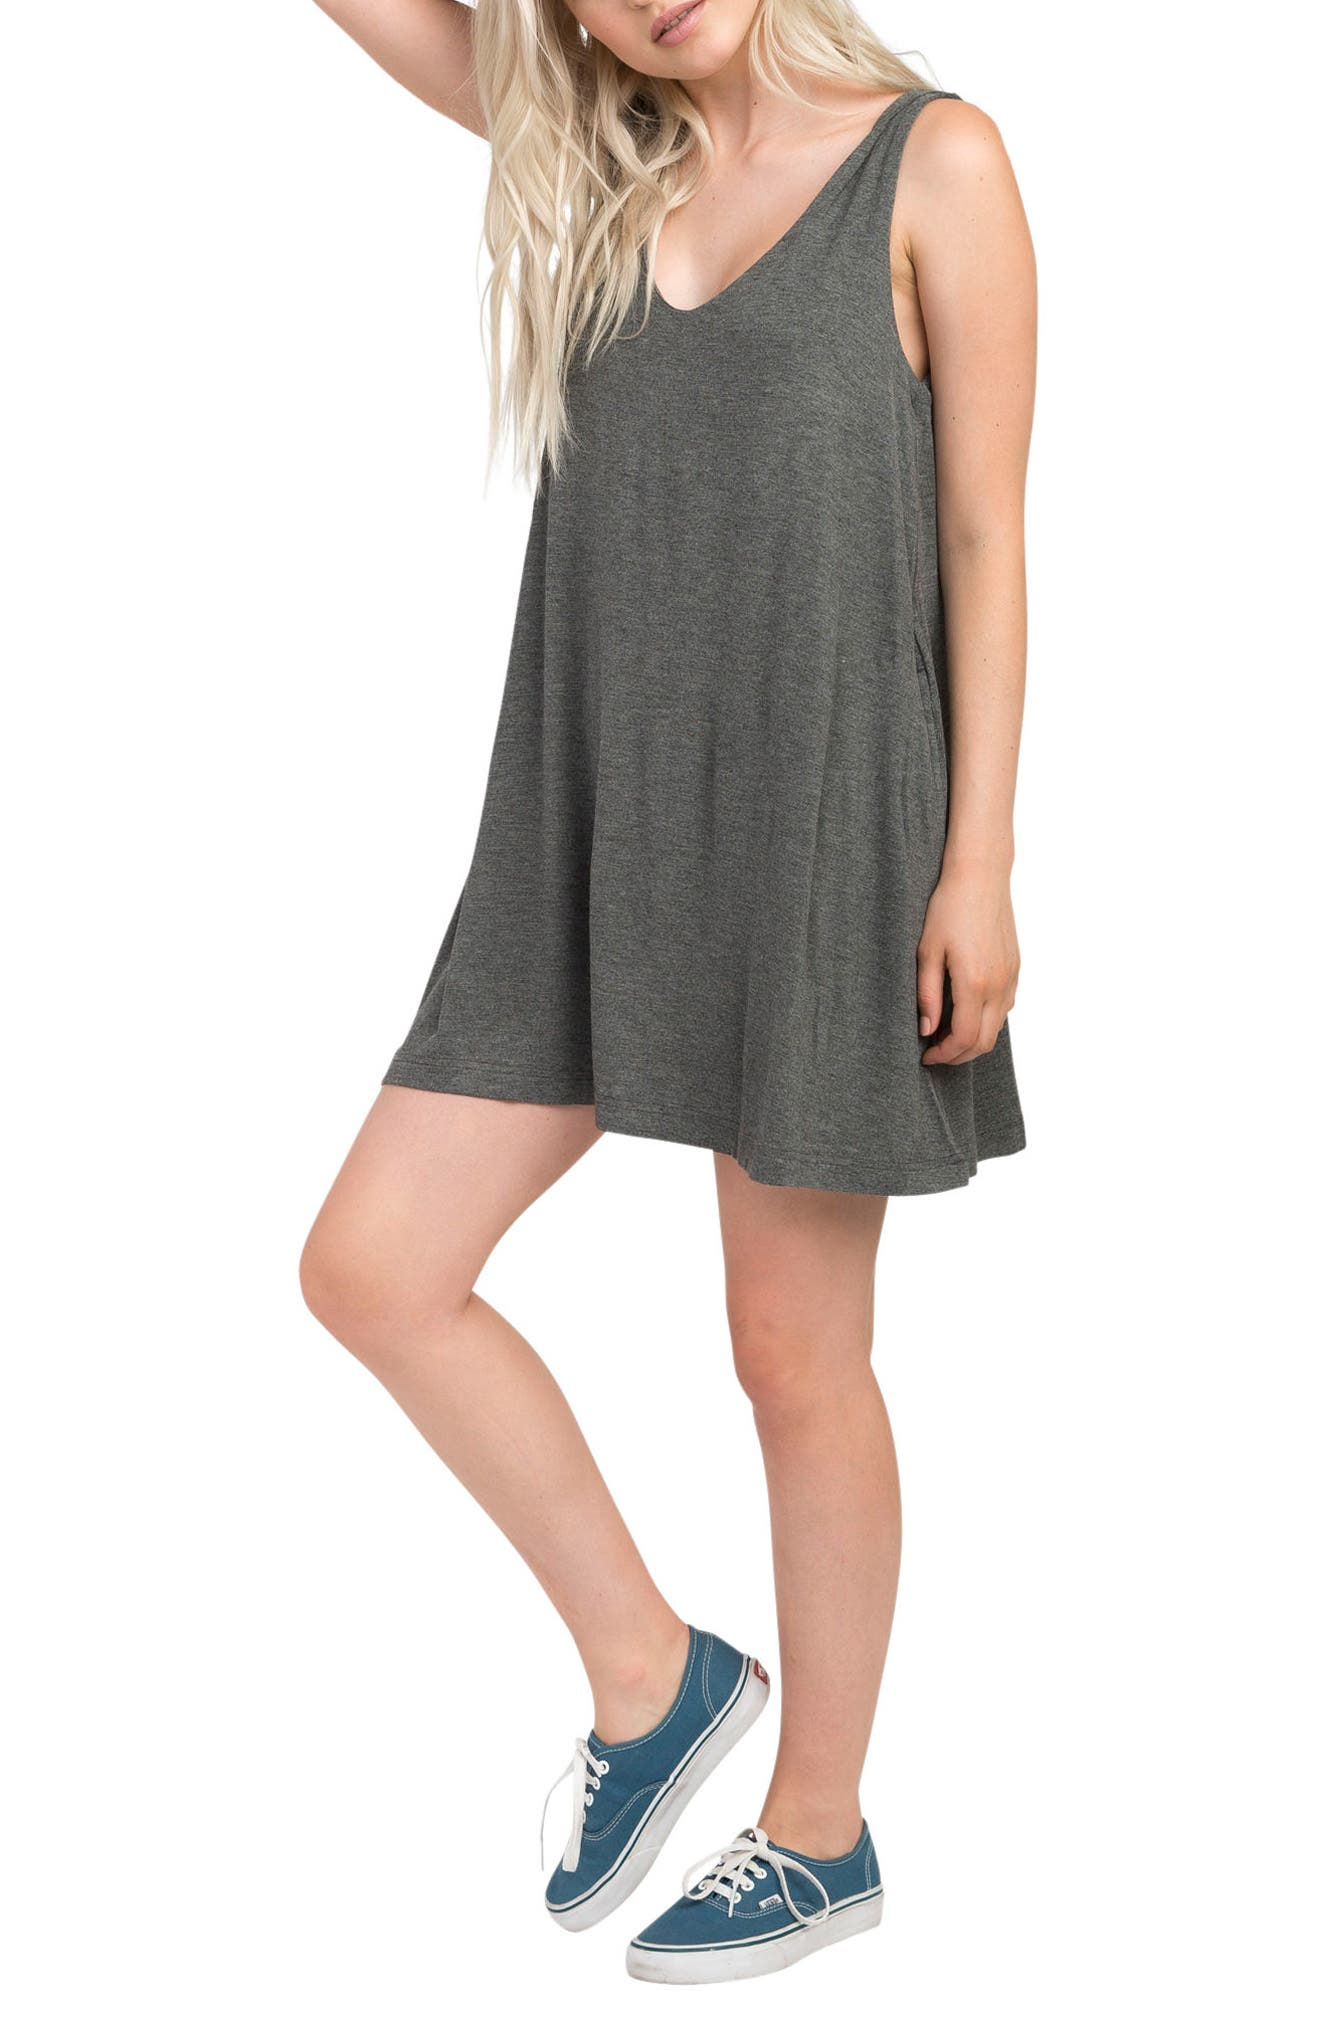 Chances Swing Dress,                             Alternate thumbnail 3, color,                             Charcoal Heather